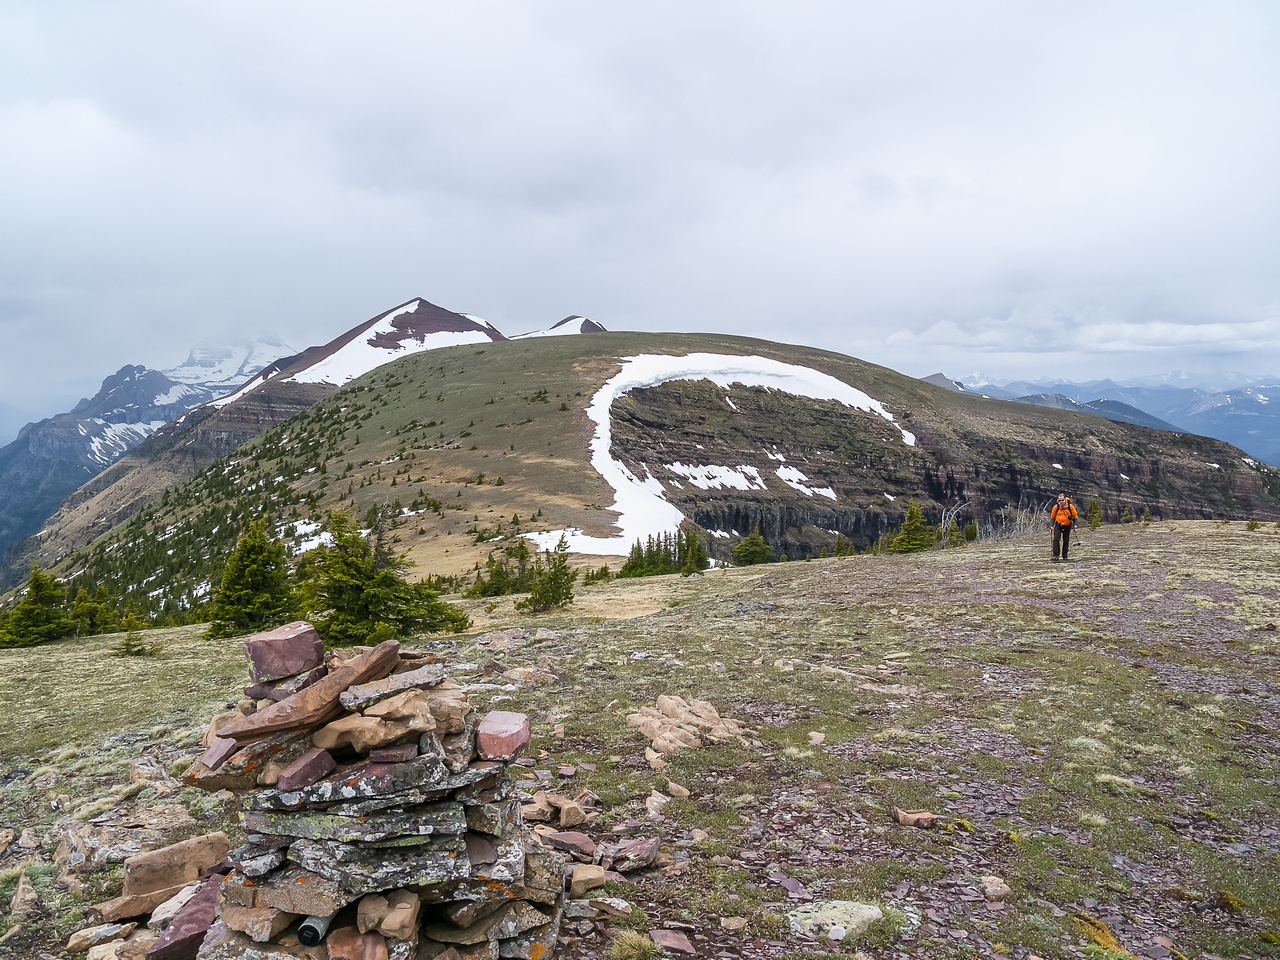 Looking to the high point of Akamina Ridge from near Forum peak.